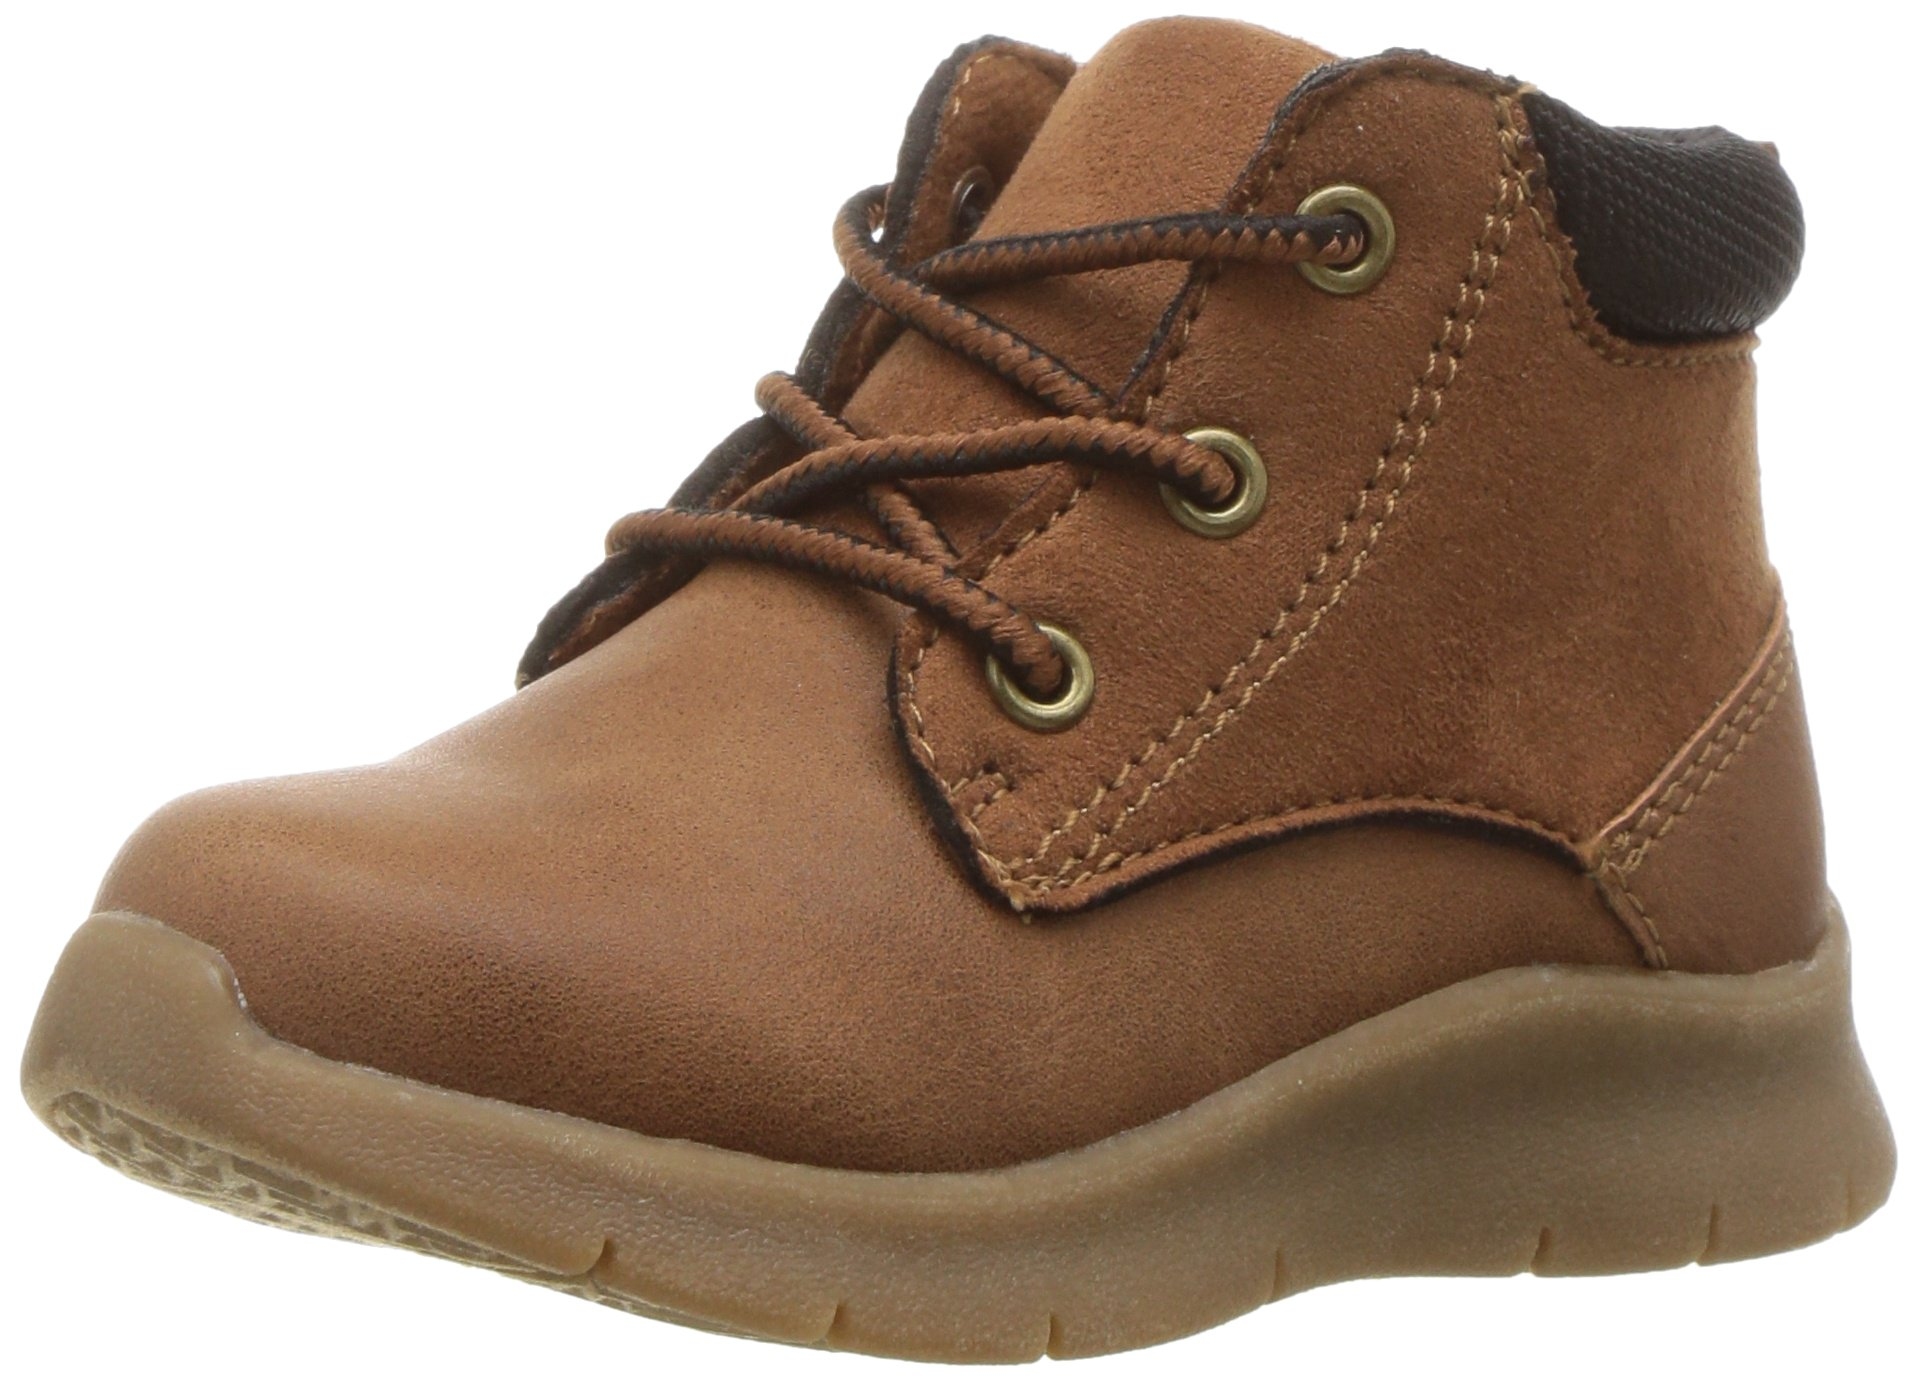 OshKosh B'Gosh Boys' Gud Athleisure Fashion Boot, Brown, 10 M US Toddler